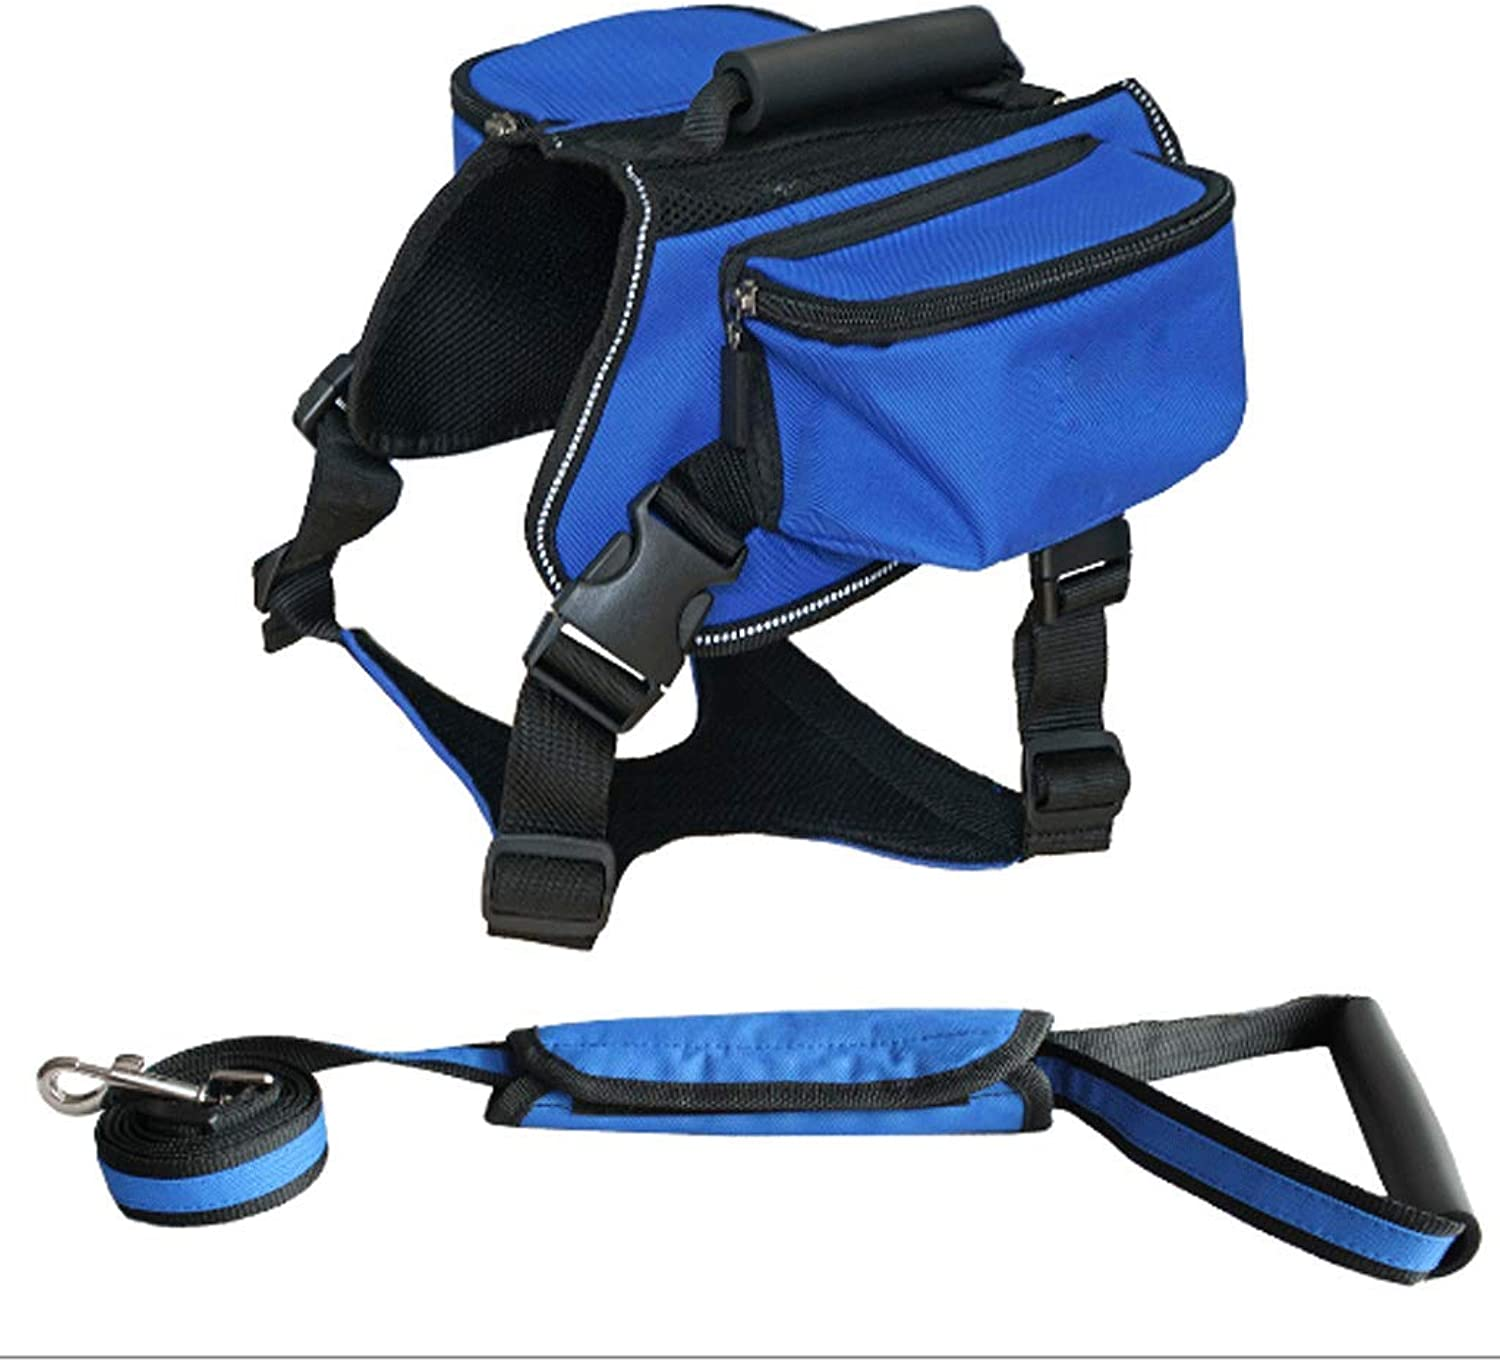 GJ Pet Out Travel Camouflage From Backpack Large Dog Outdoor Selfieng Bag Tow Backpack Plus Traction Rope (Colore: Blue, Size: L)